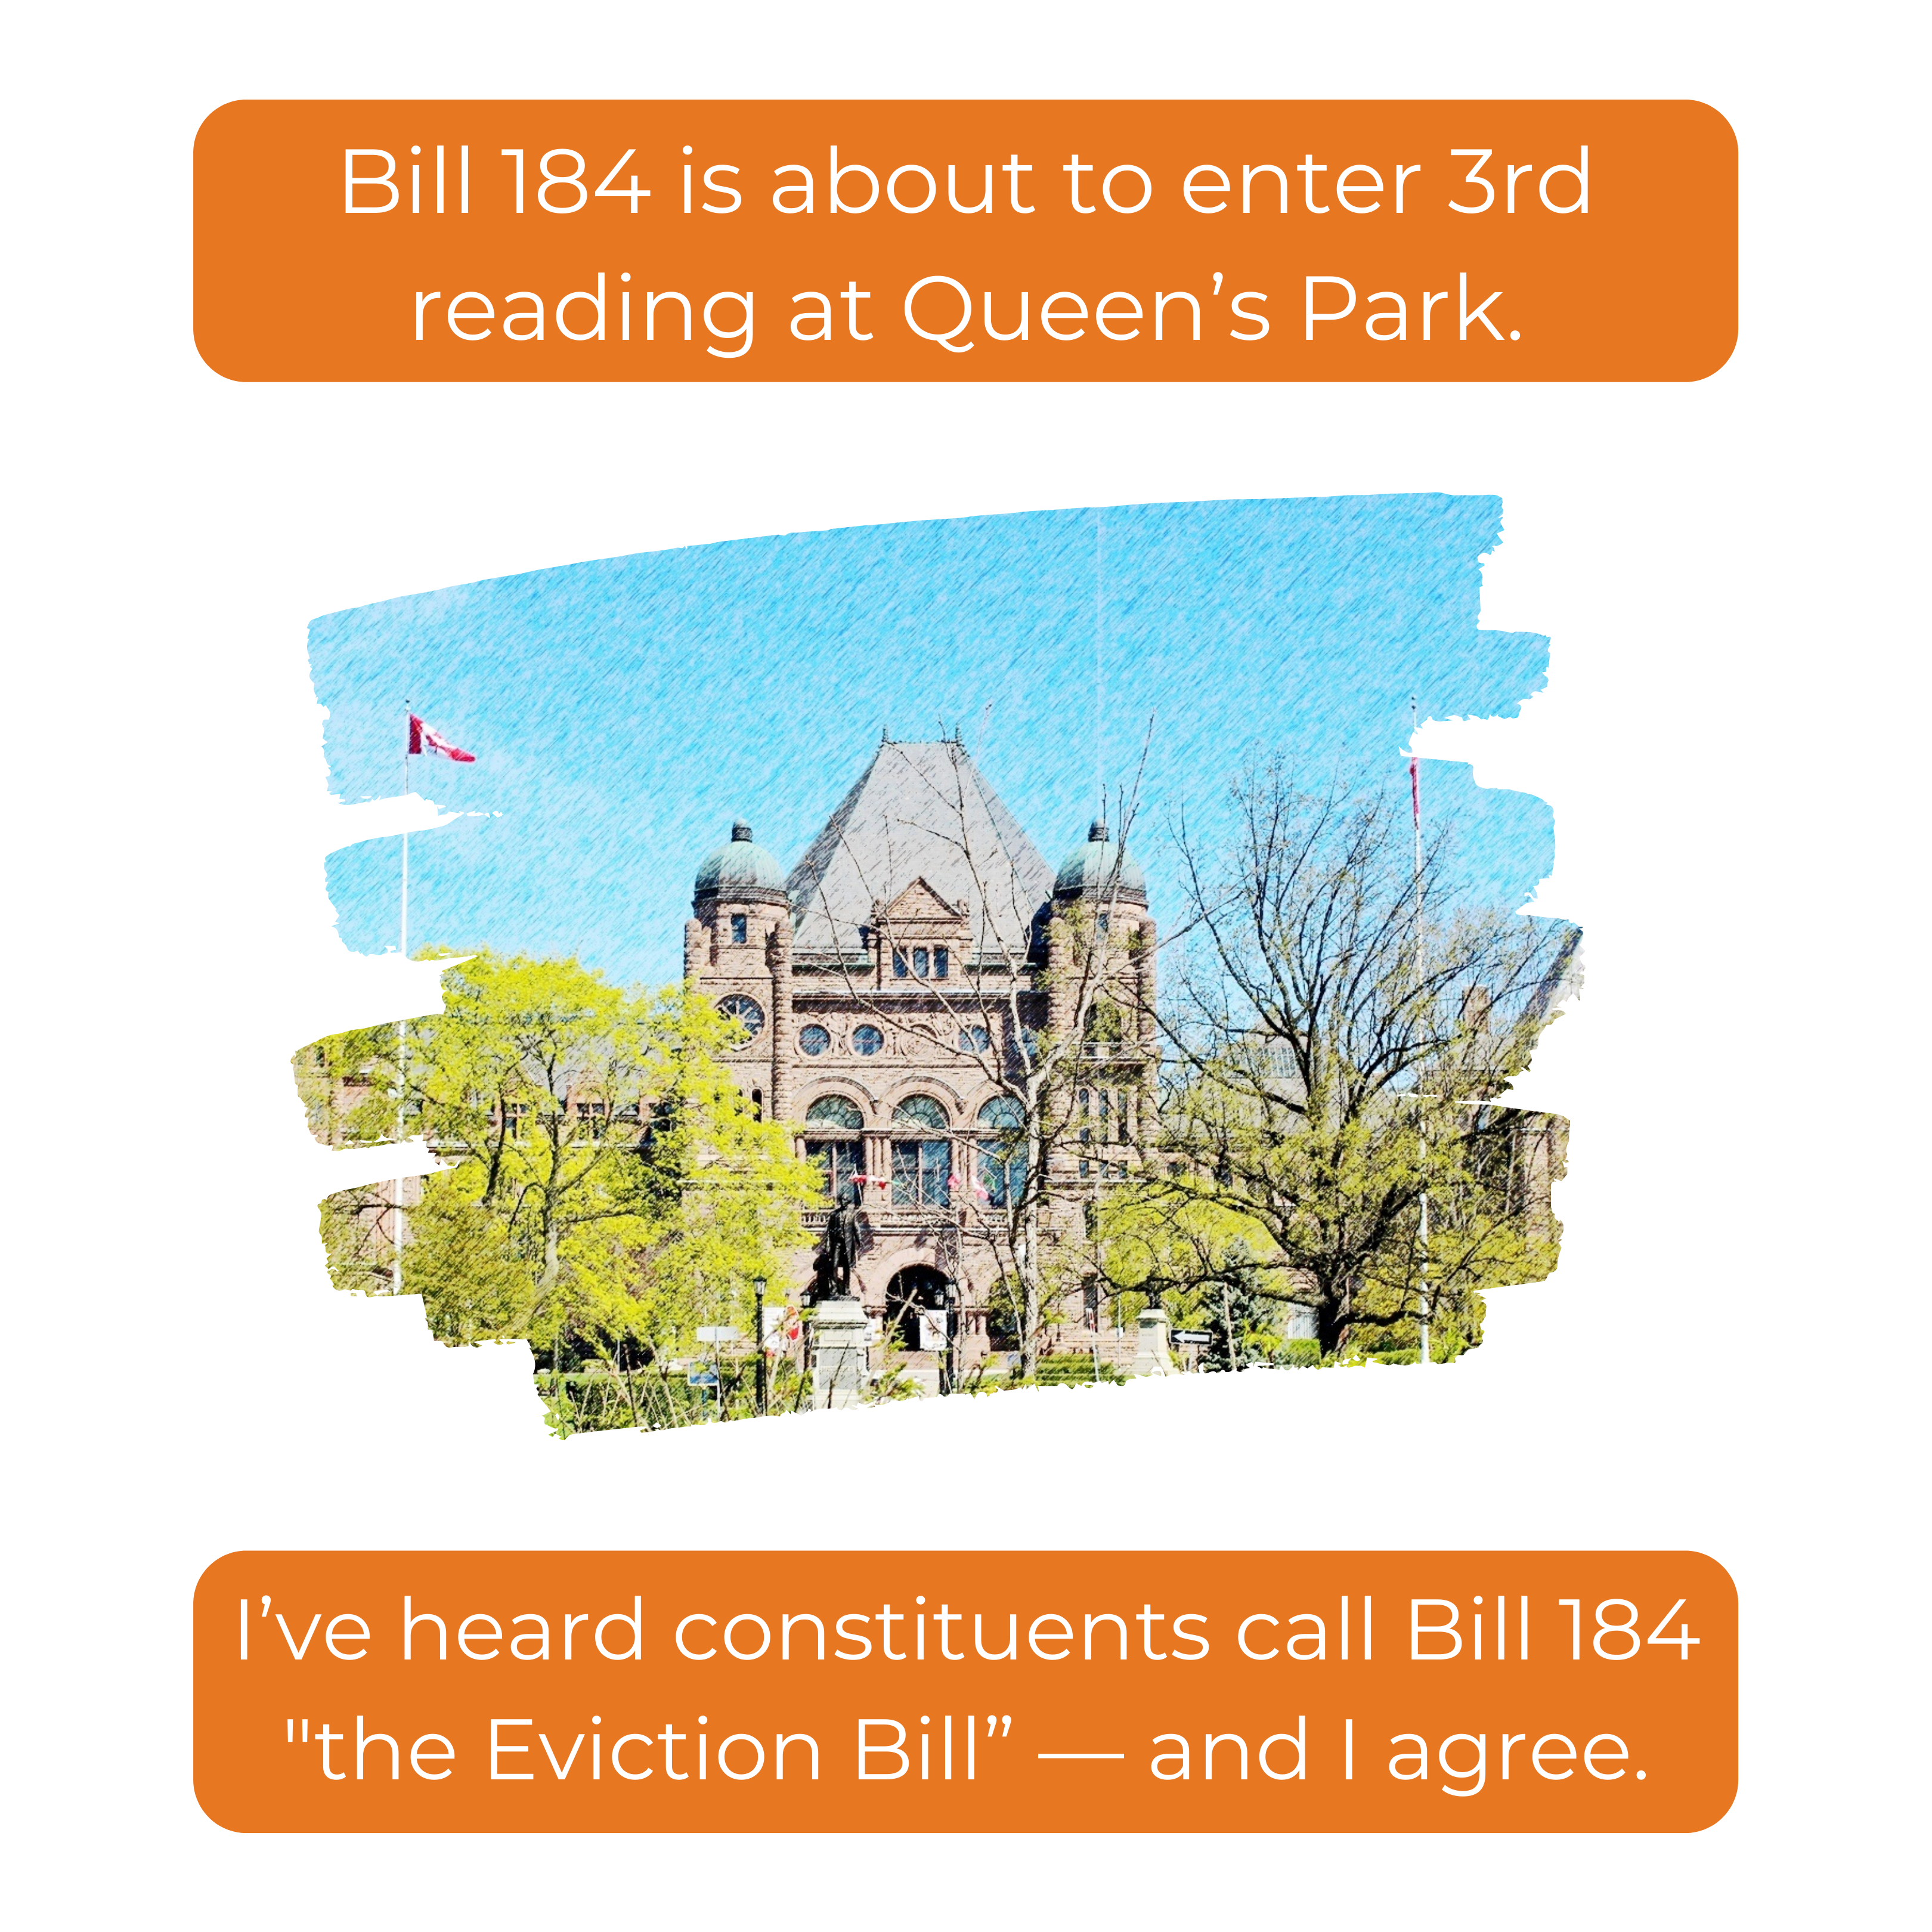 Bill 184 is about to enter 3rd reading at Queen's Park. I've heard constituents call Bill 184 \